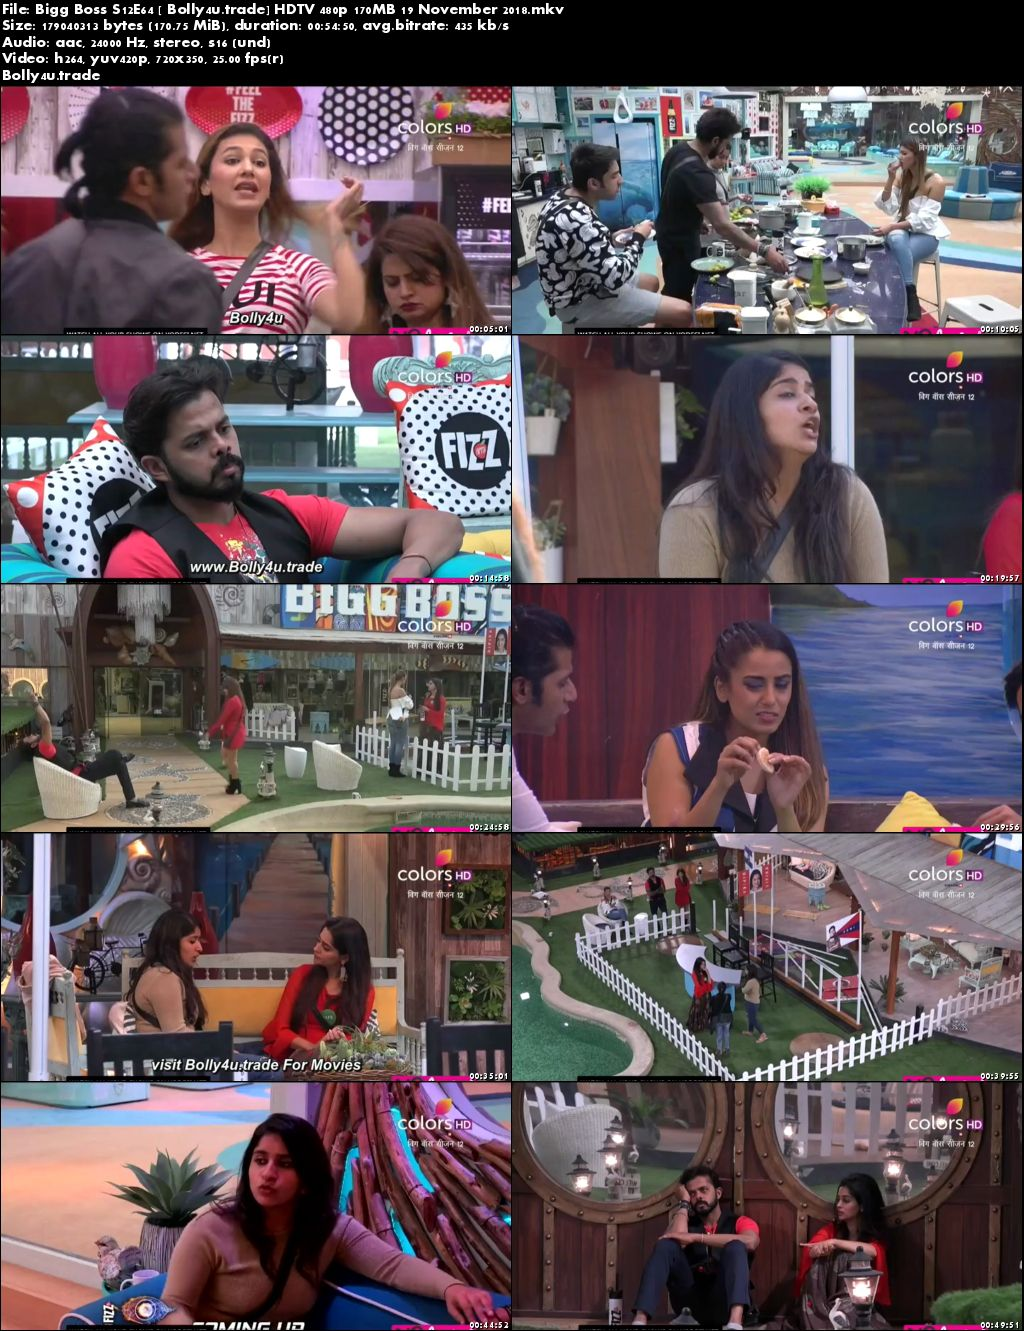 Bigg Boss S12E64 HDTV 480p 170MB 19 November 2018 Download